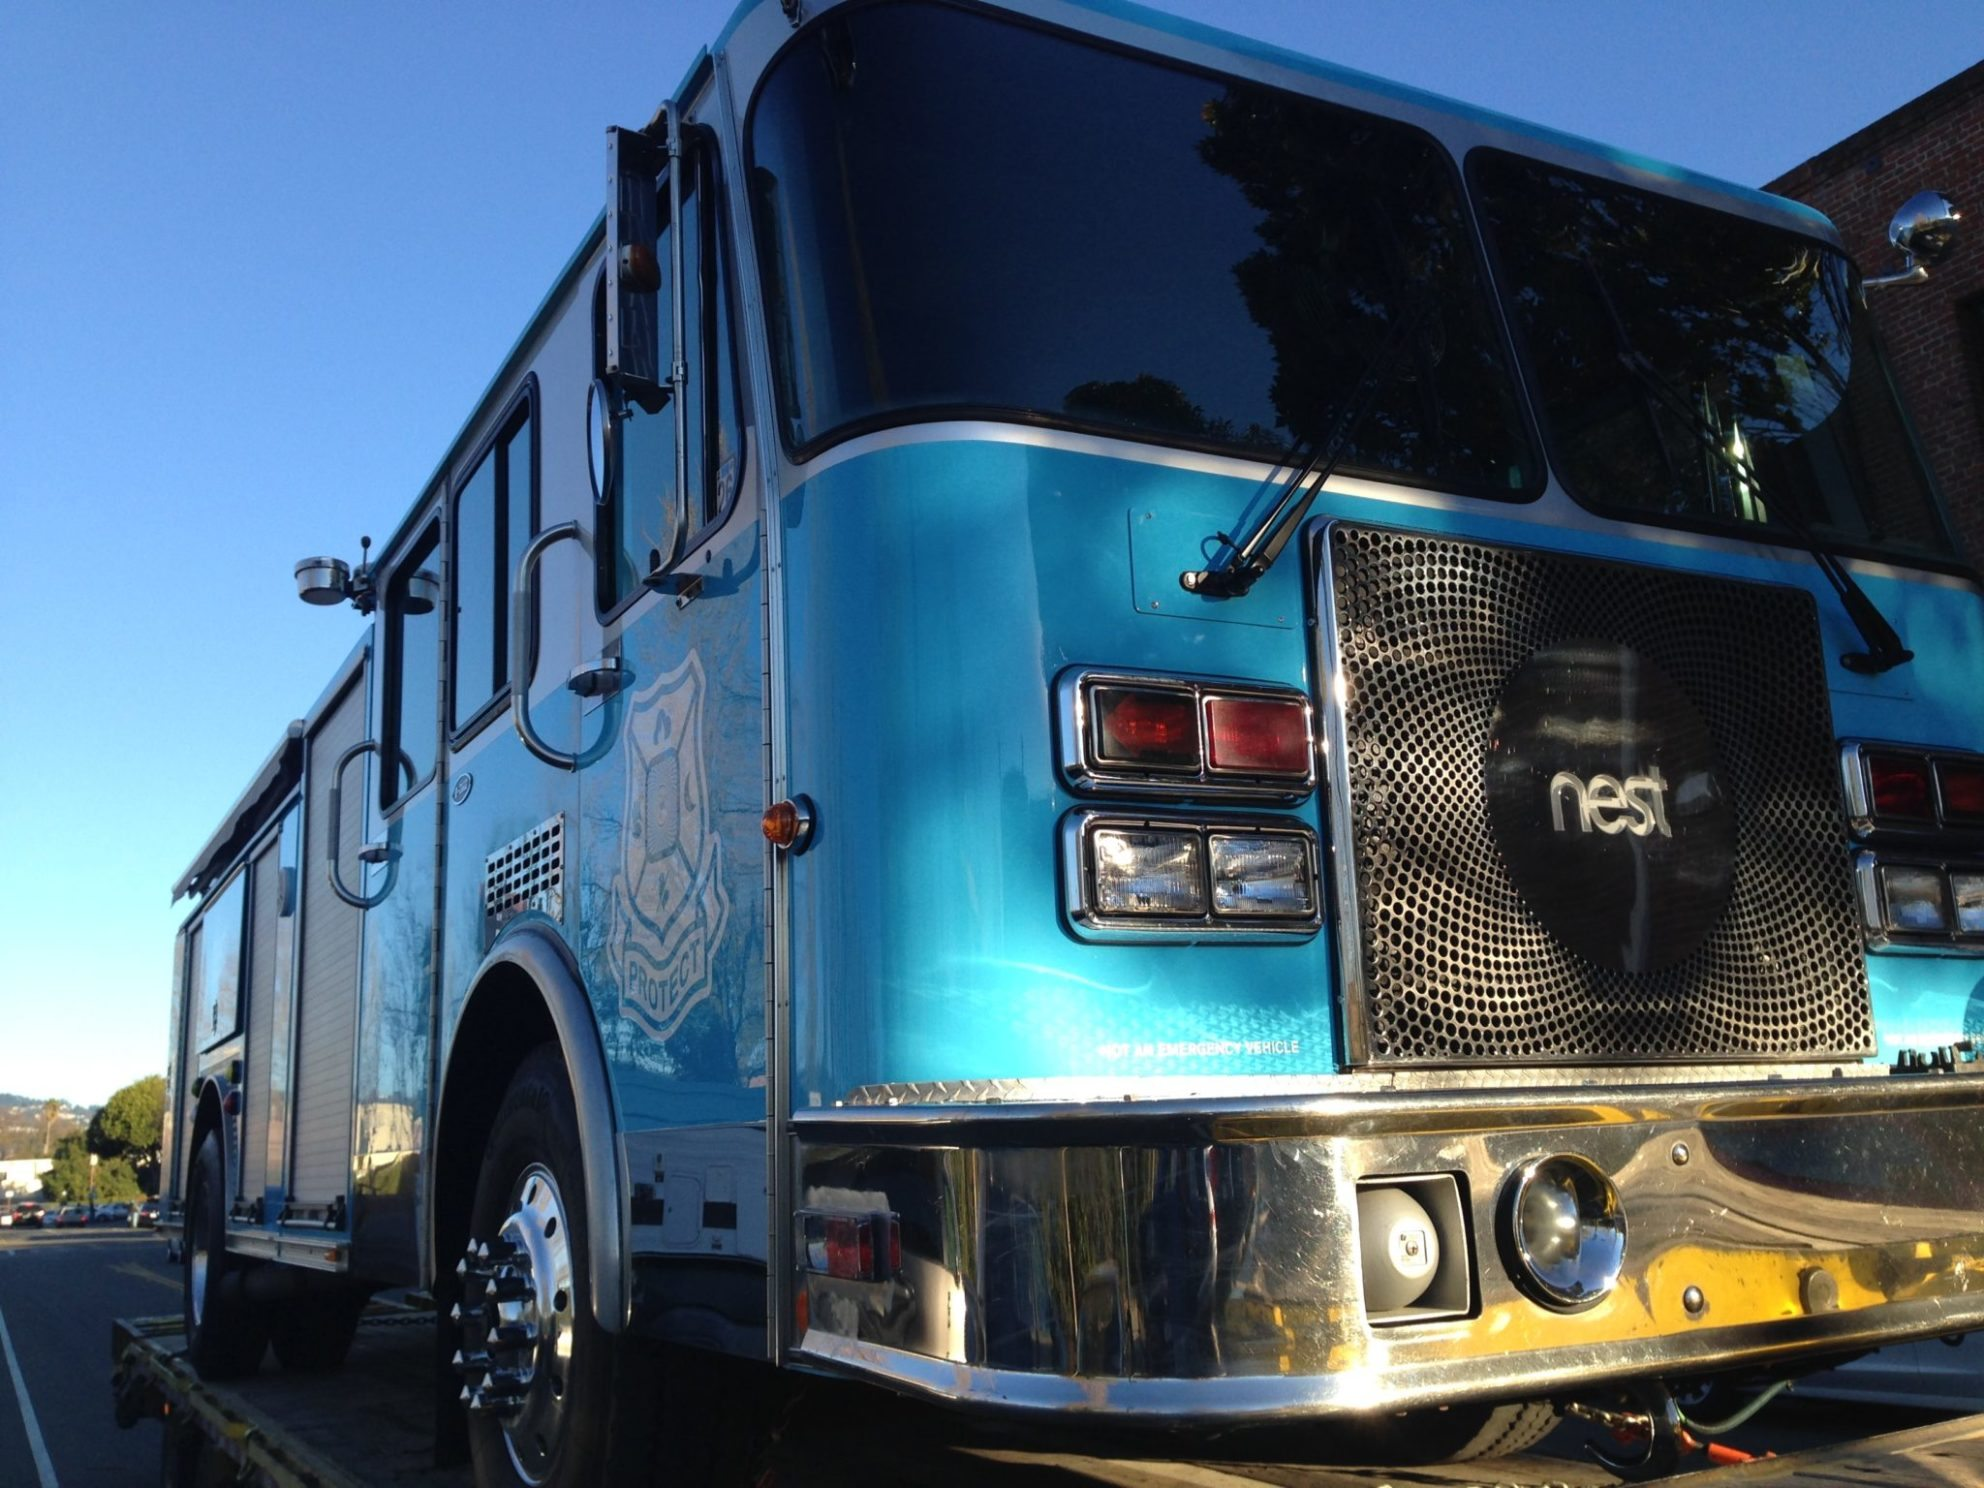 Nest pimps old fire truck, puts it on the street selling smart thermostats and fire alarms